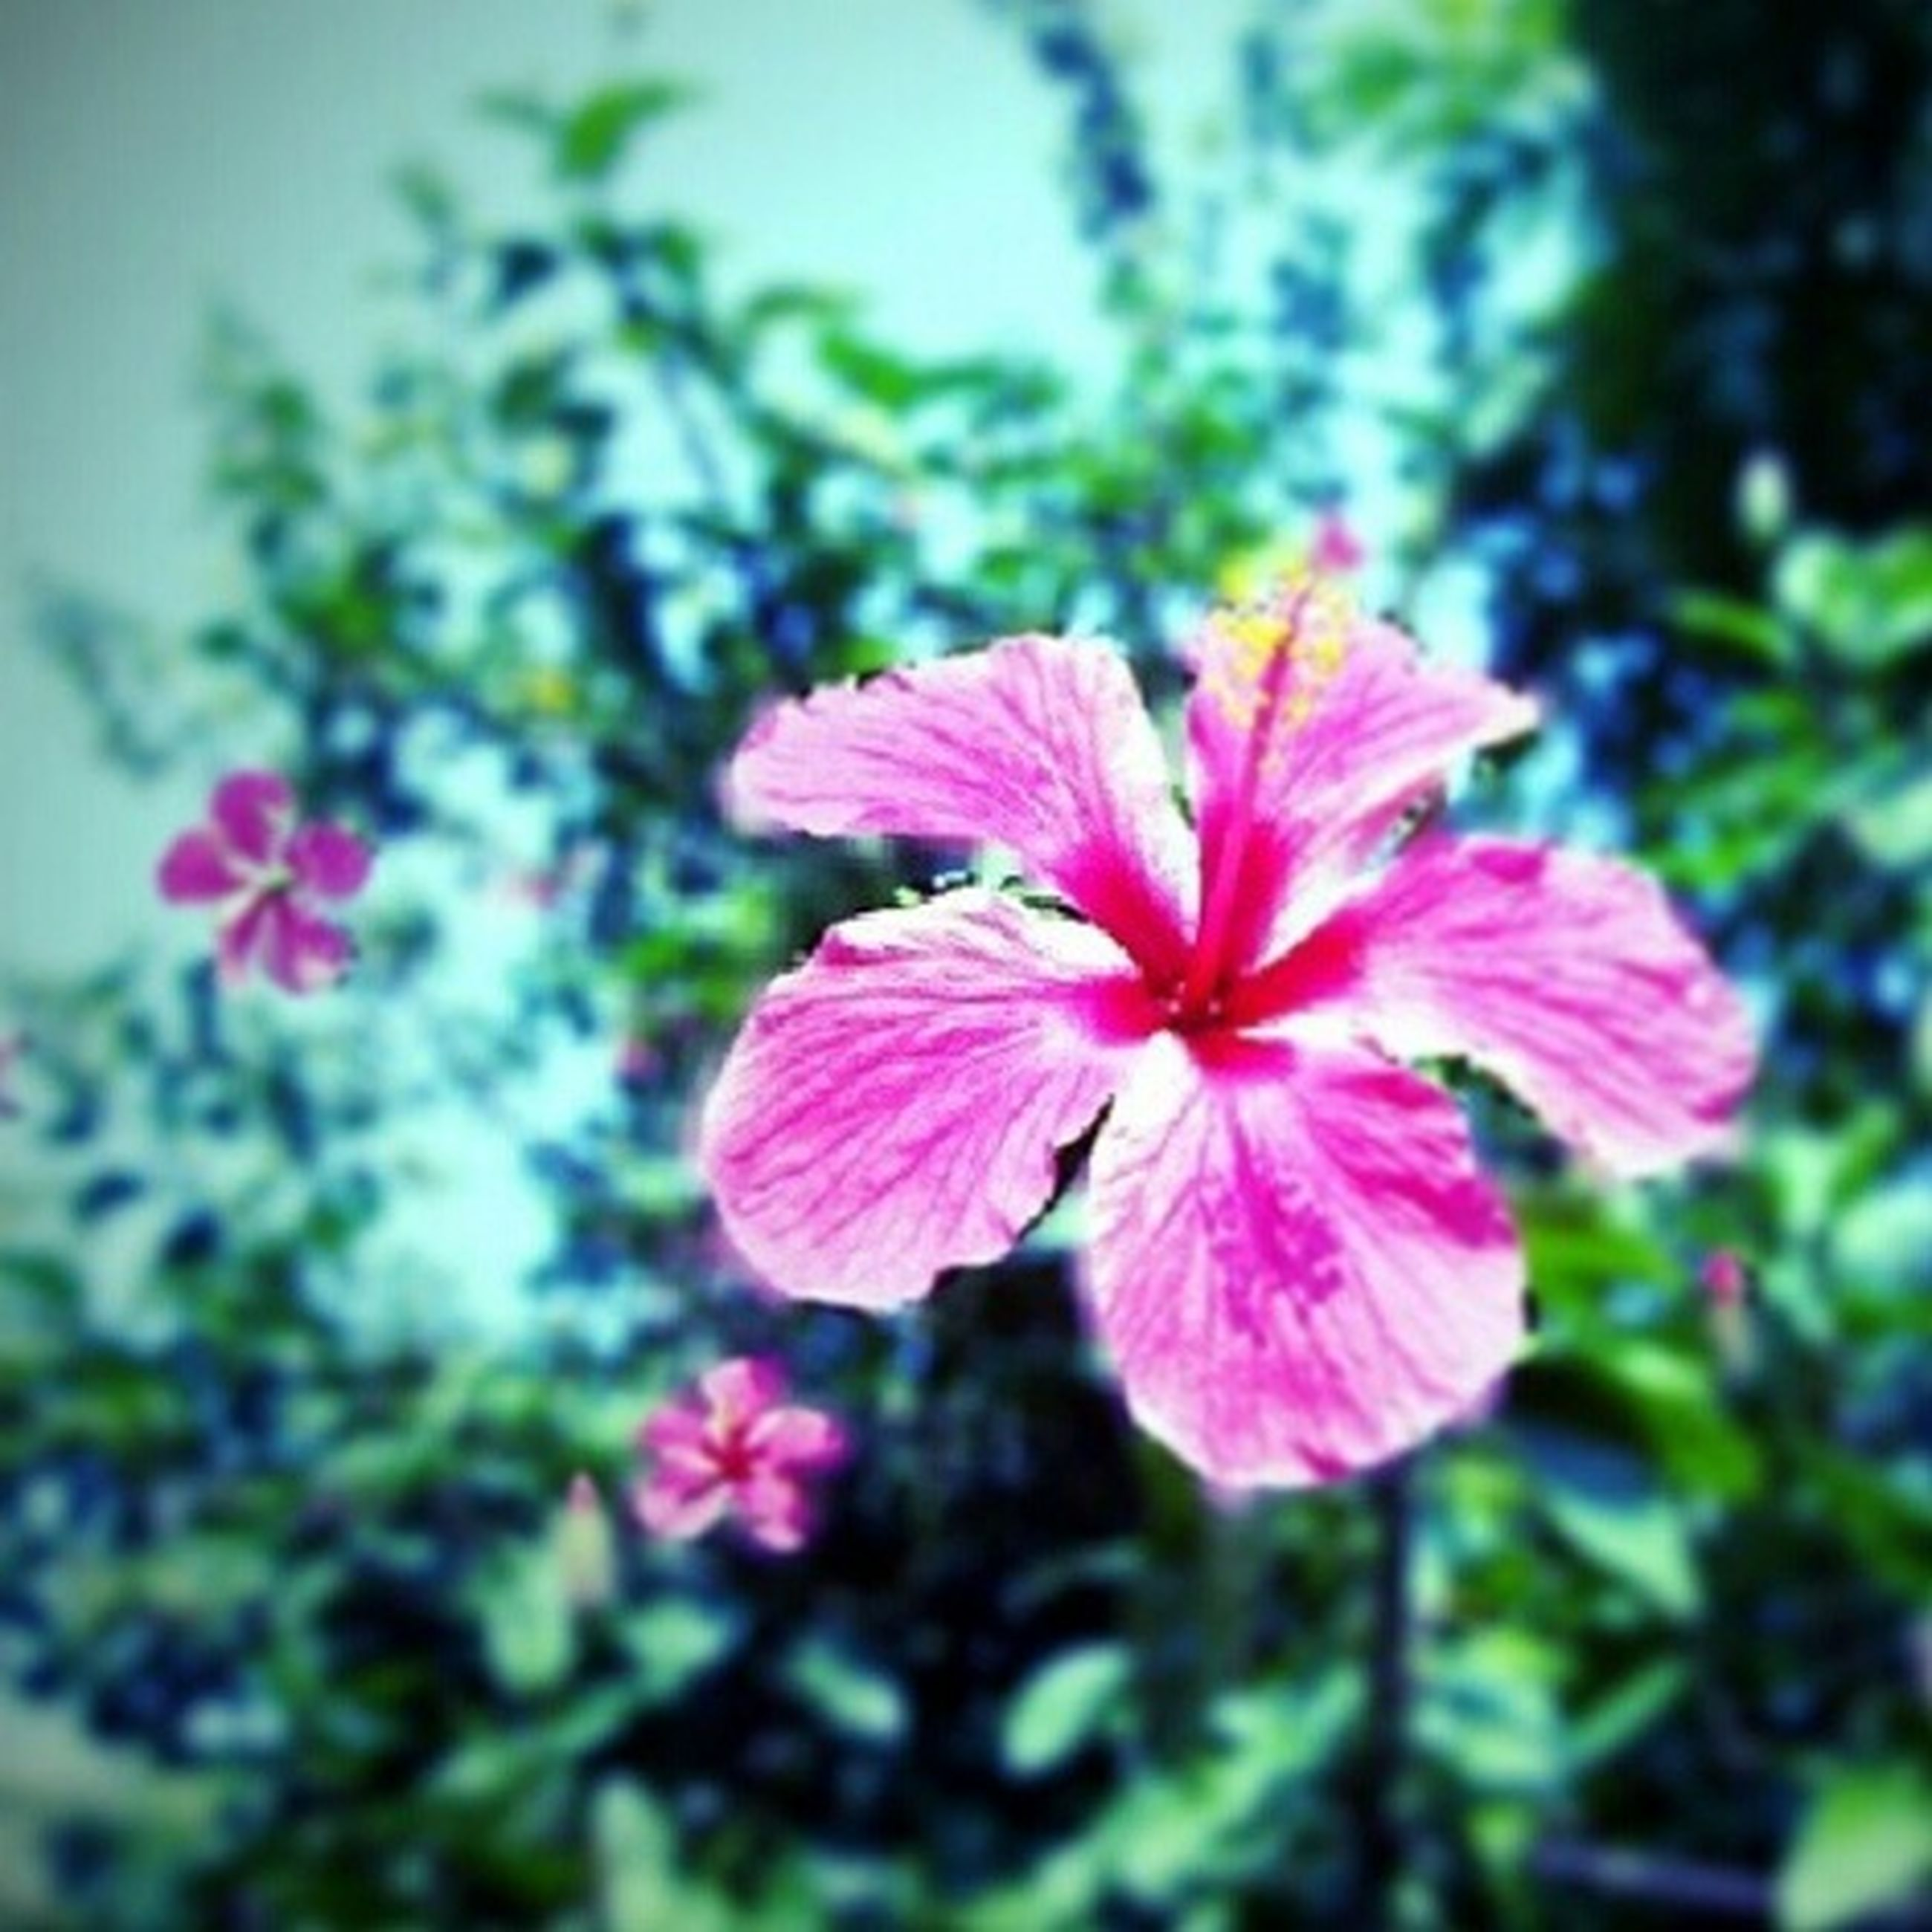 flower, petal, freshness, fragility, growth, flower head, pink color, beauty in nature, focus on foreground, close-up, blooming, nature, plant, in bloom, pollen, stamen, day, park - man made space, outdoors, blossom